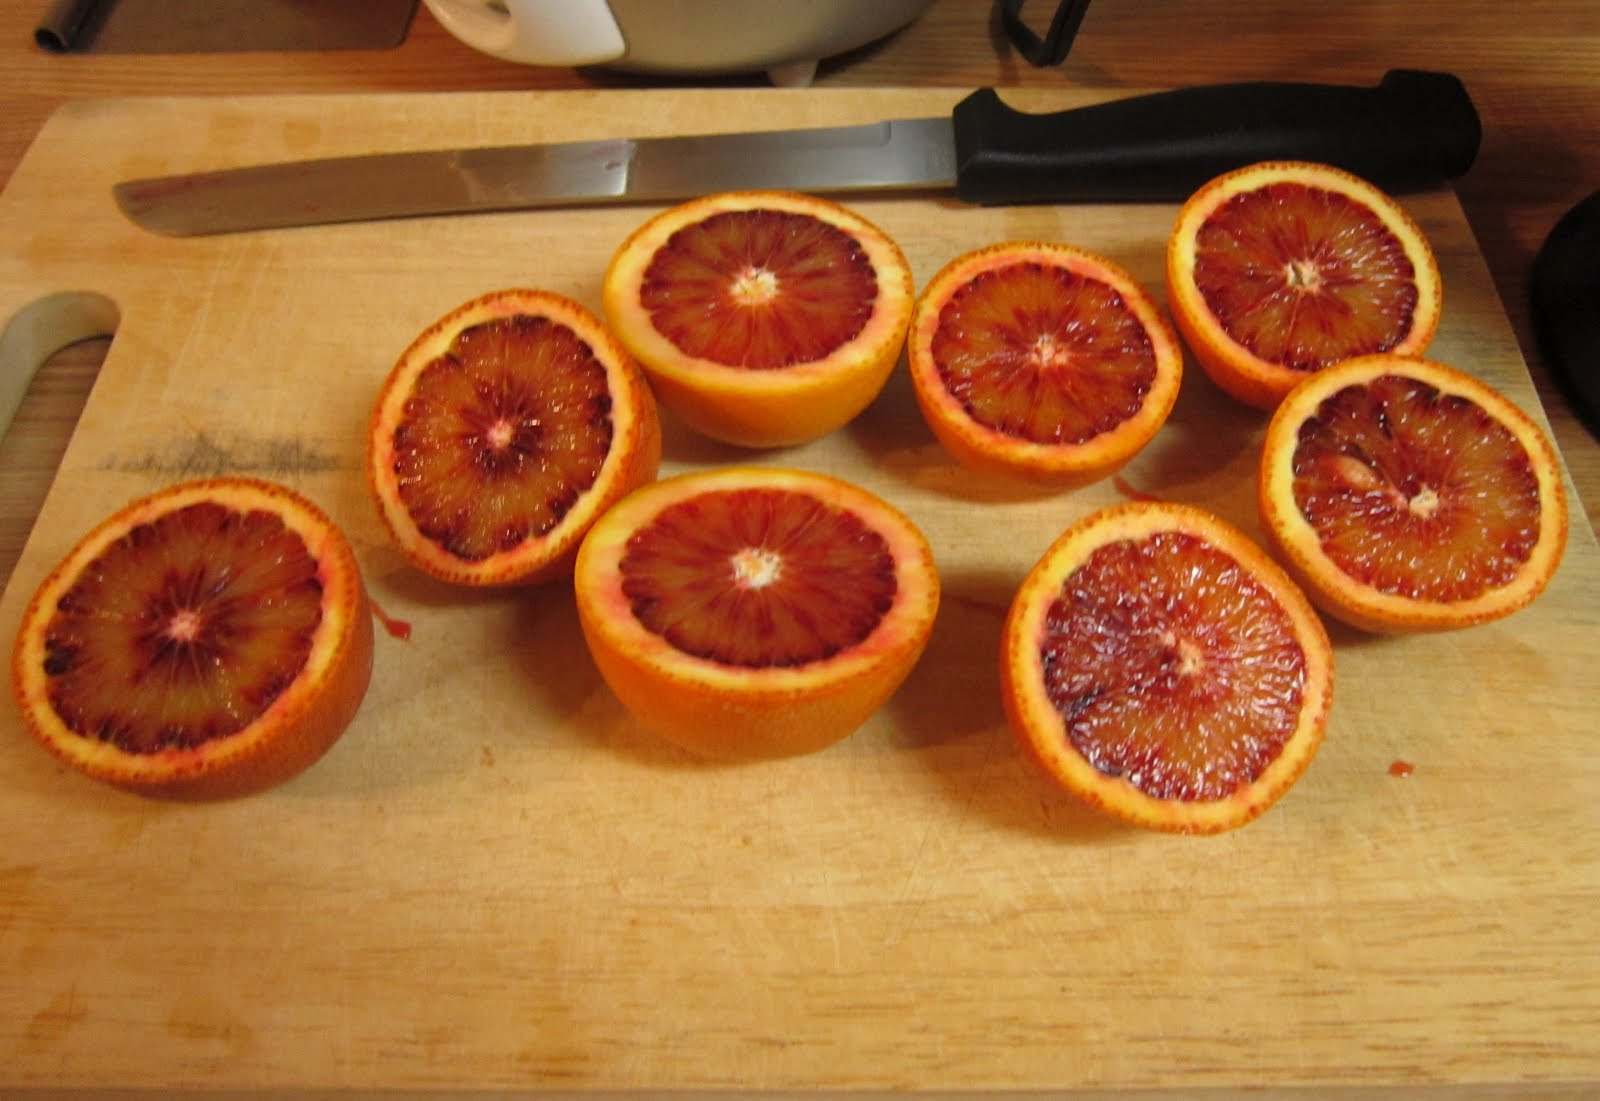 ... : The Produce Box Challenge: Strawberry Blood Orange Creamsicles